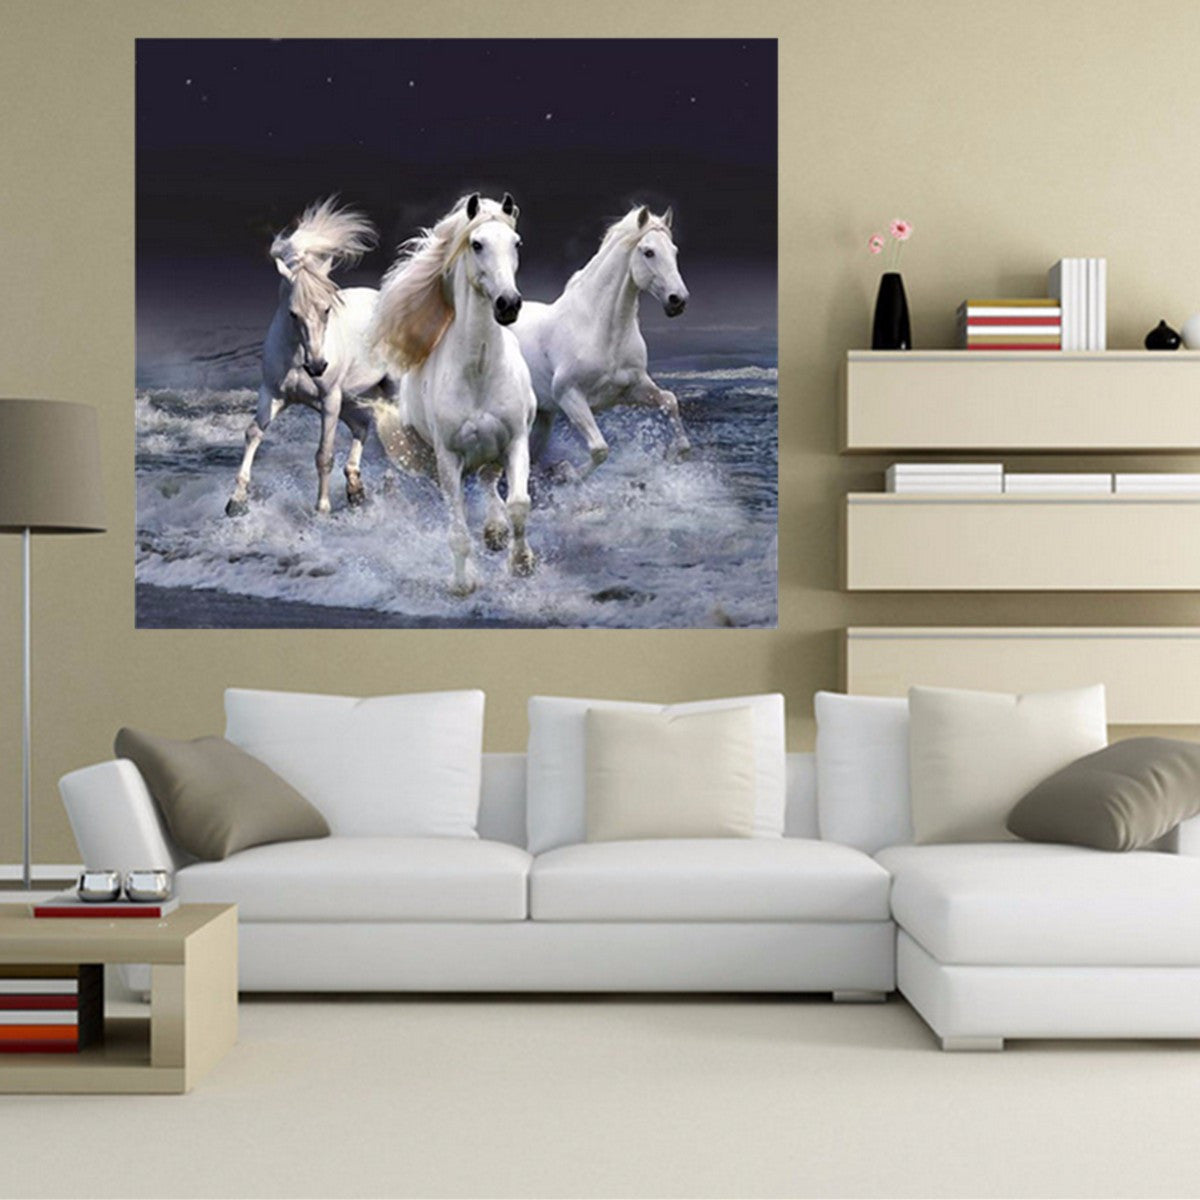 5D Diamond Horse Embroidery Painting Cross Stitch Craft Kit Home Wall Decor DIY